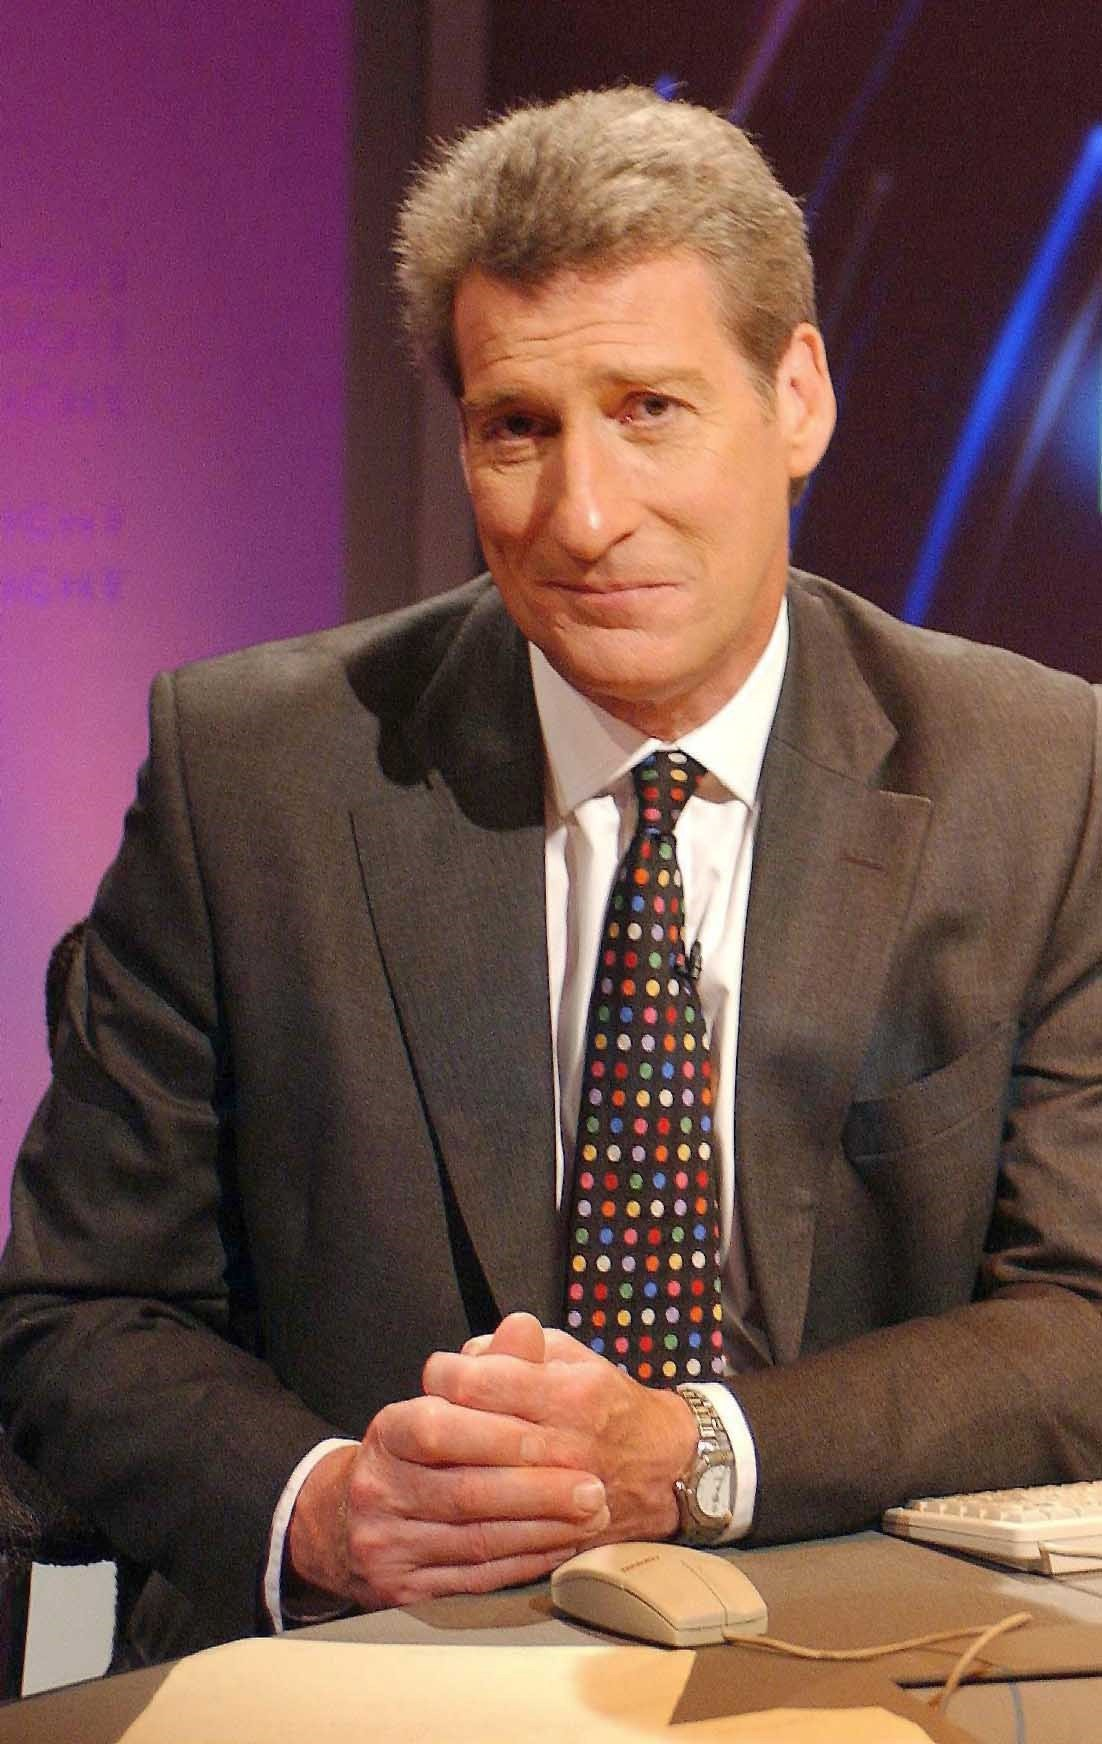 SCHOOL VIEW: Jeremy Paxman, neither stable nor industrious